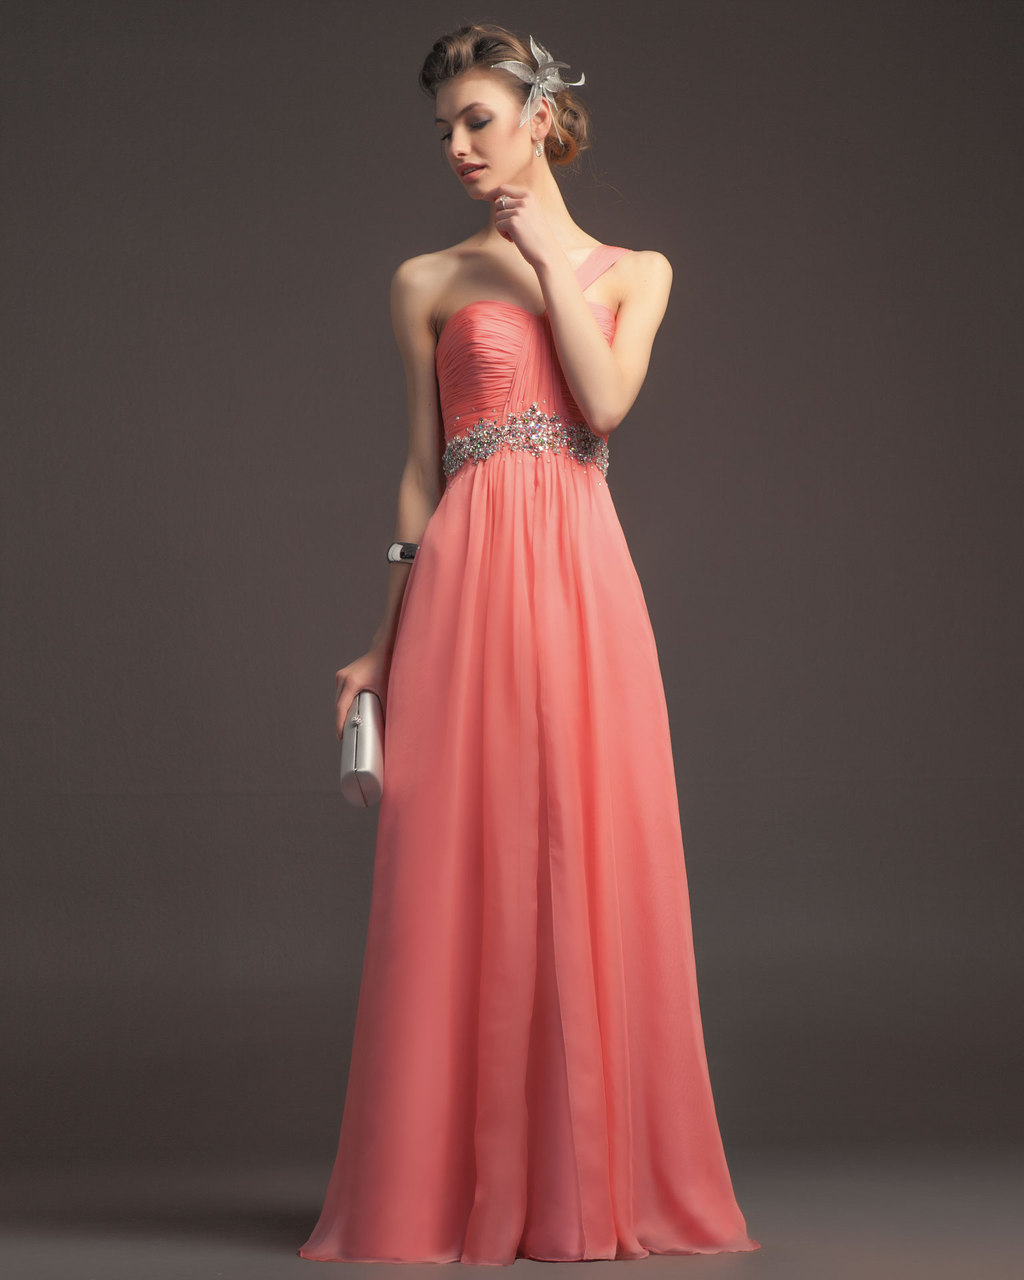 Gorgeous-2014-bridesmaid-dresses-from-aire-barcelona-vintage-pale-peach-chiffon.full